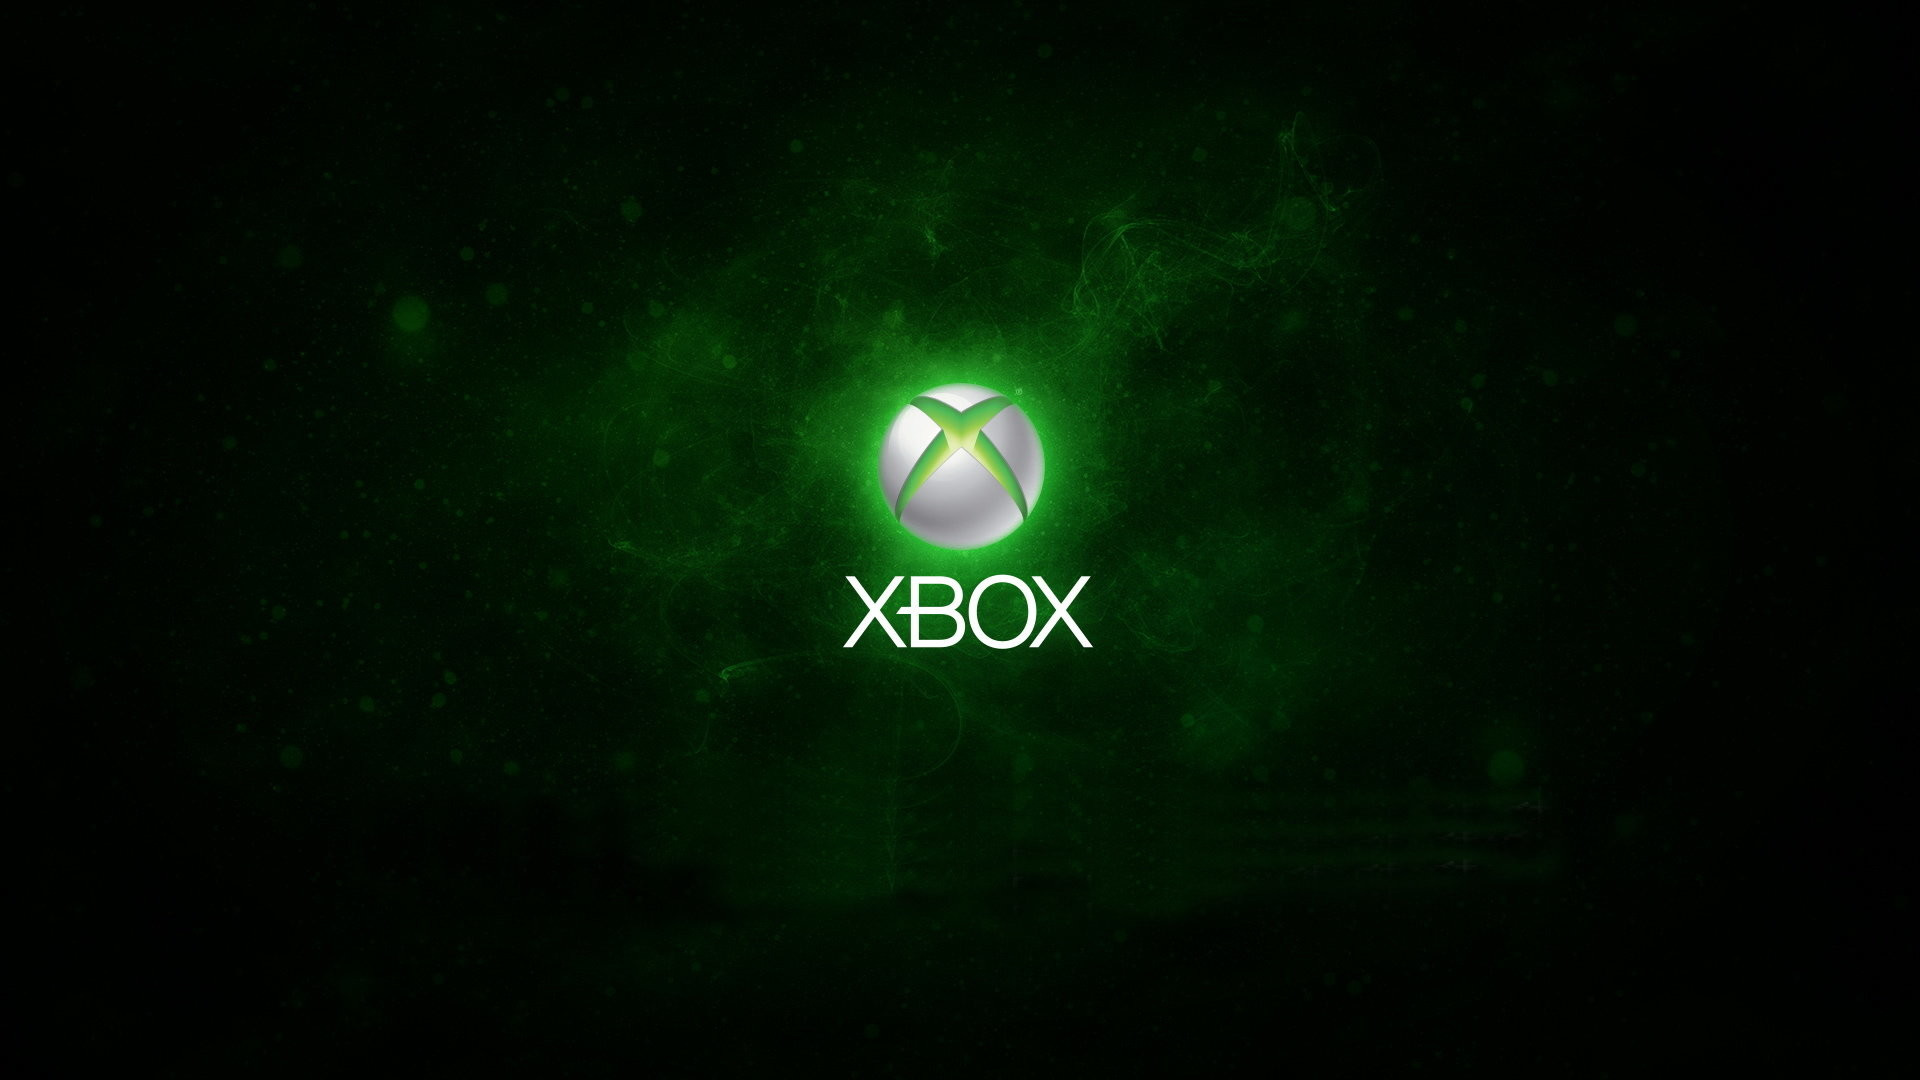 Xbox Wallpapers 1